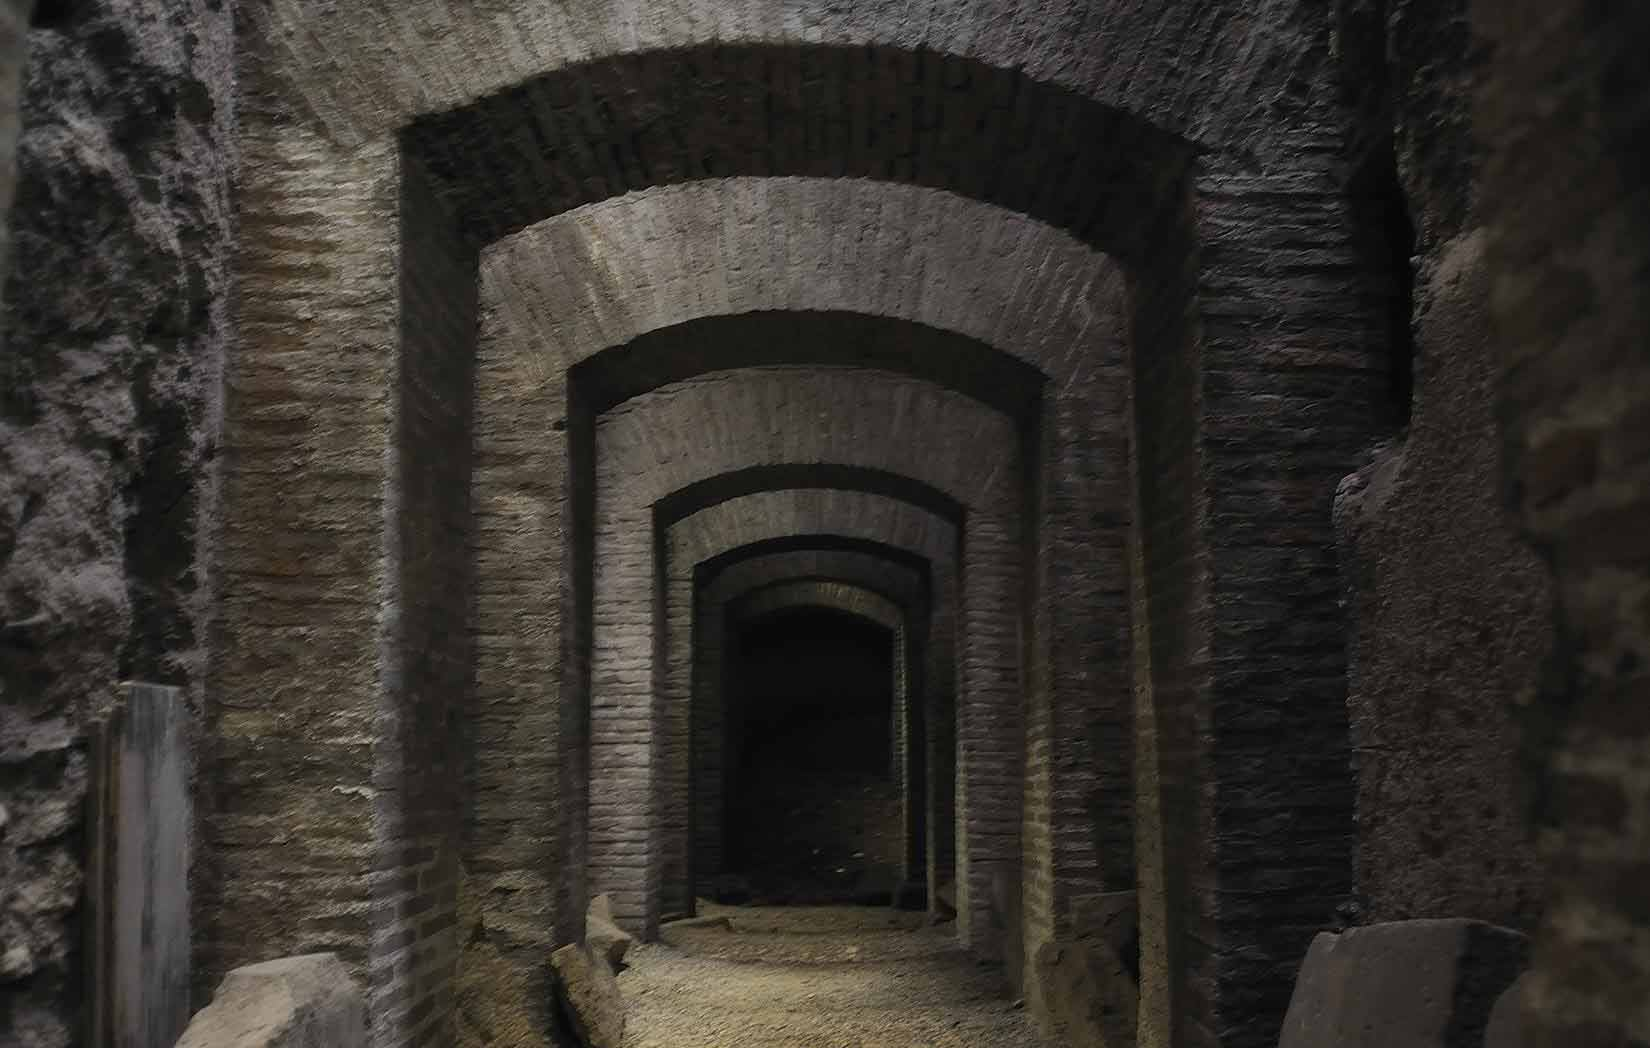 The Crypts and Catacombs of Rome - 700 km of mysteries and secrets